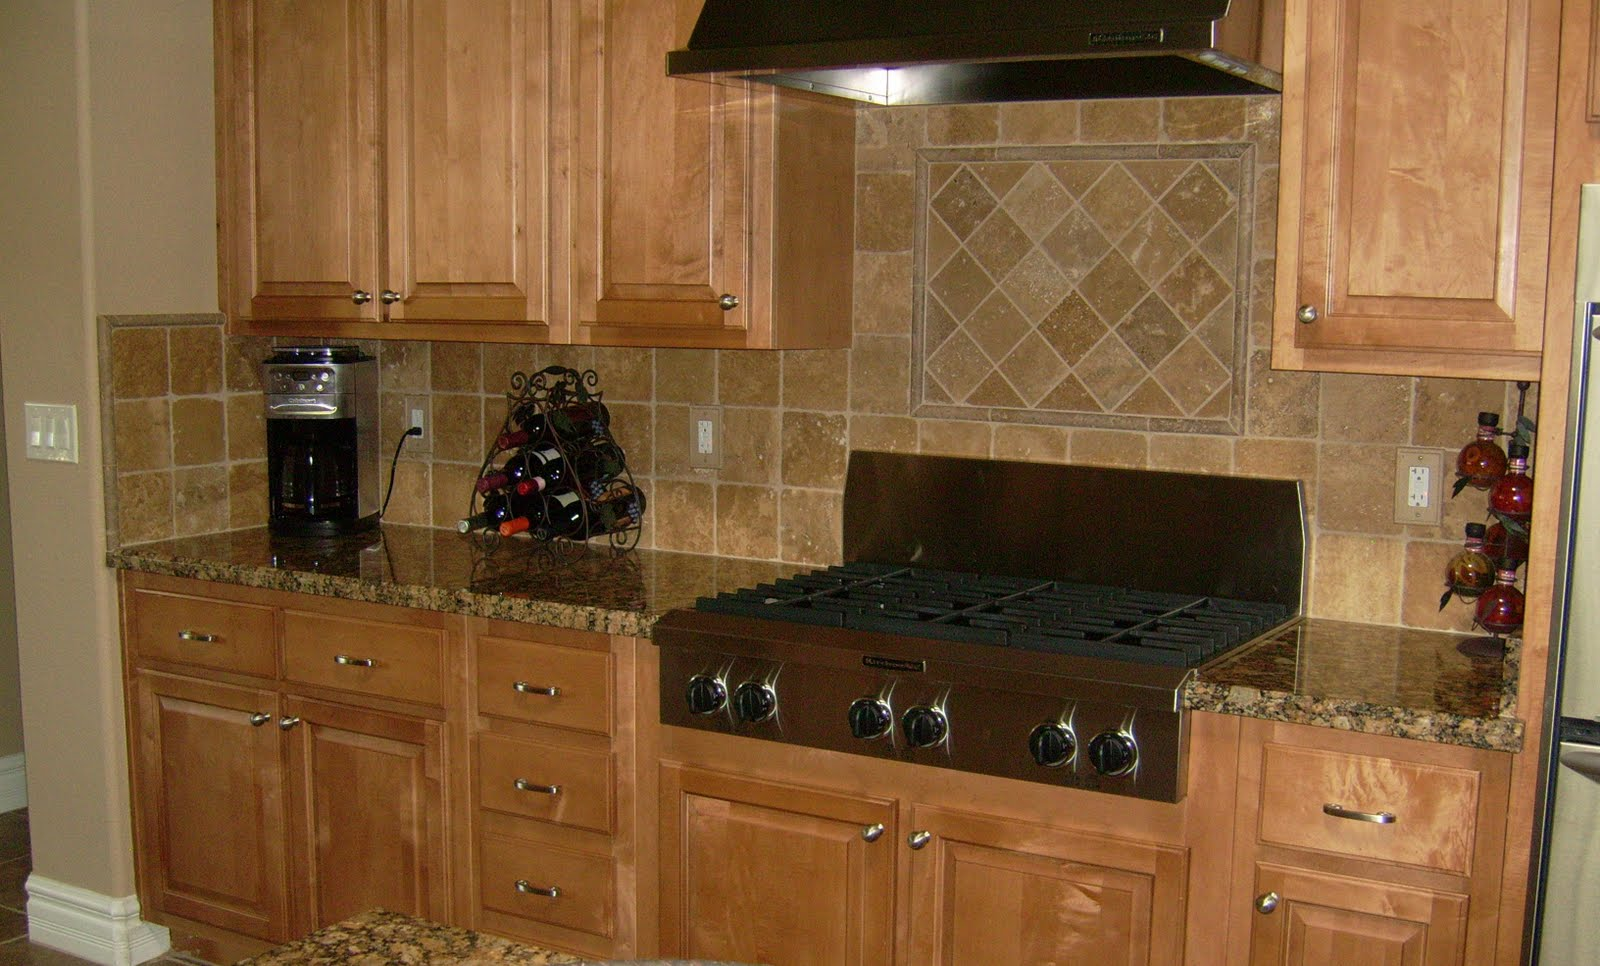 ideas of kitchen designs on Pictures Kitchen Backsplash Ideas 6x6 Tumbled Stone Kitchen Backsplash ...